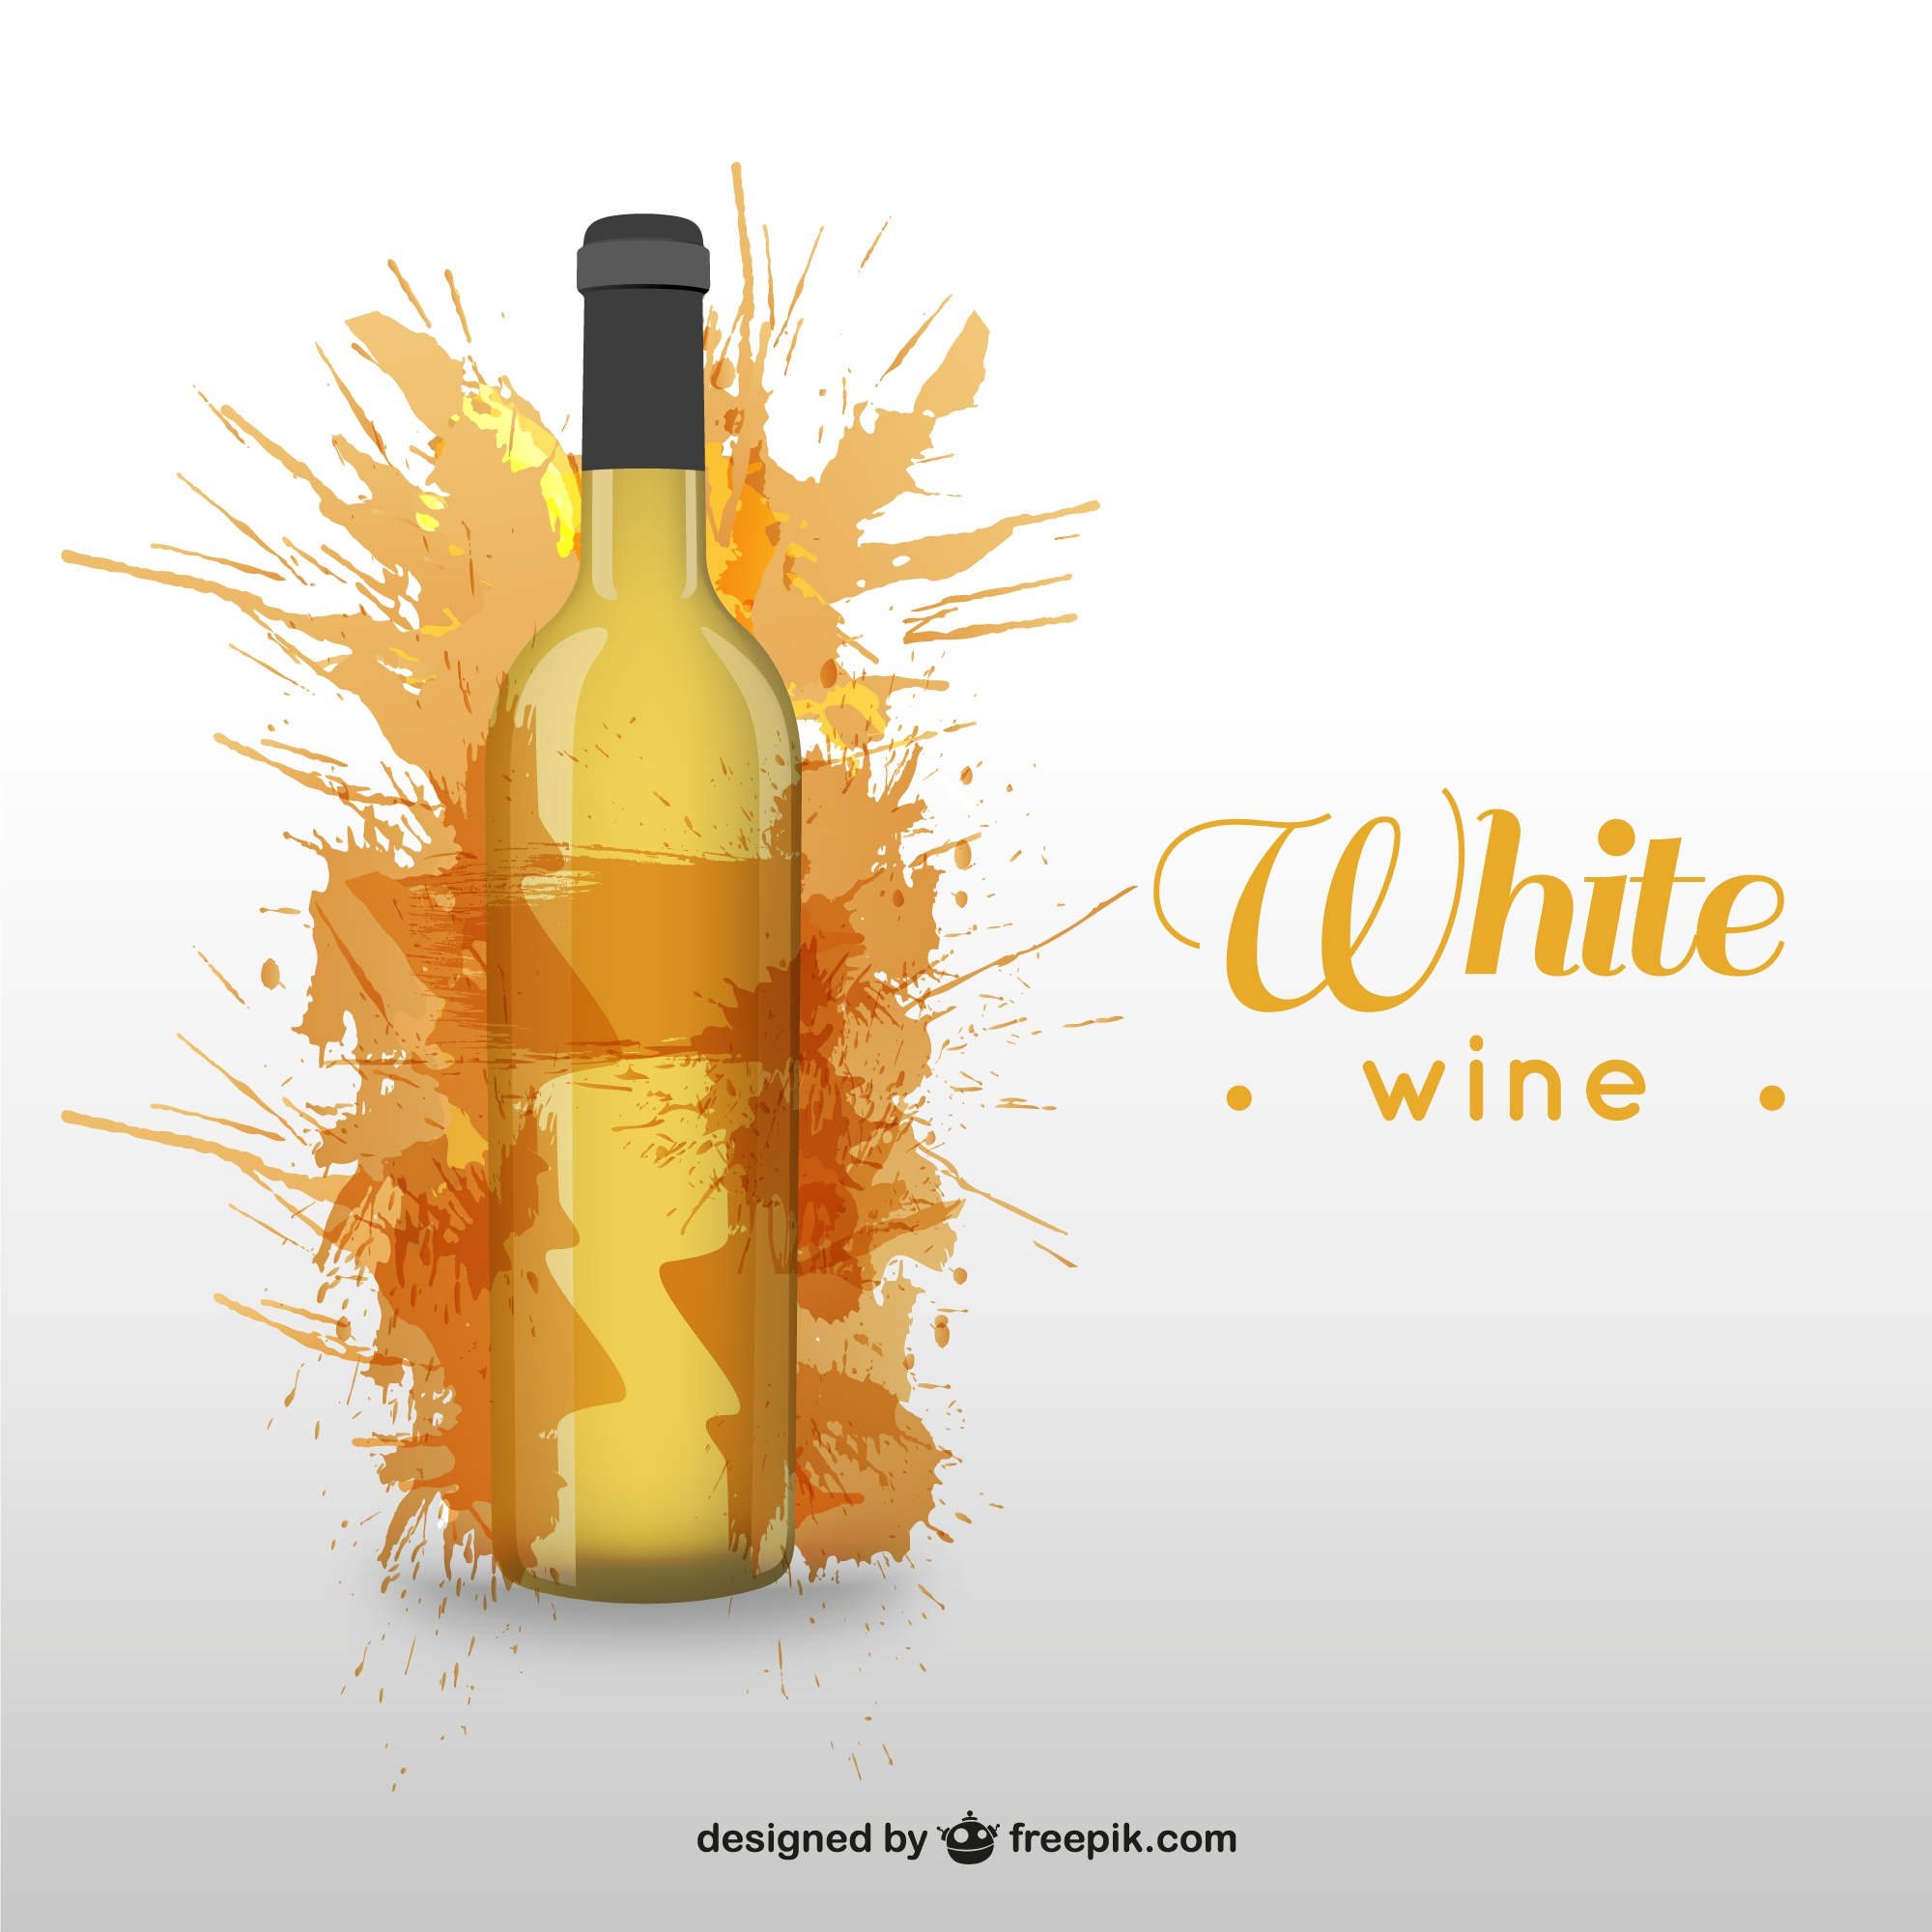 White wine bottle